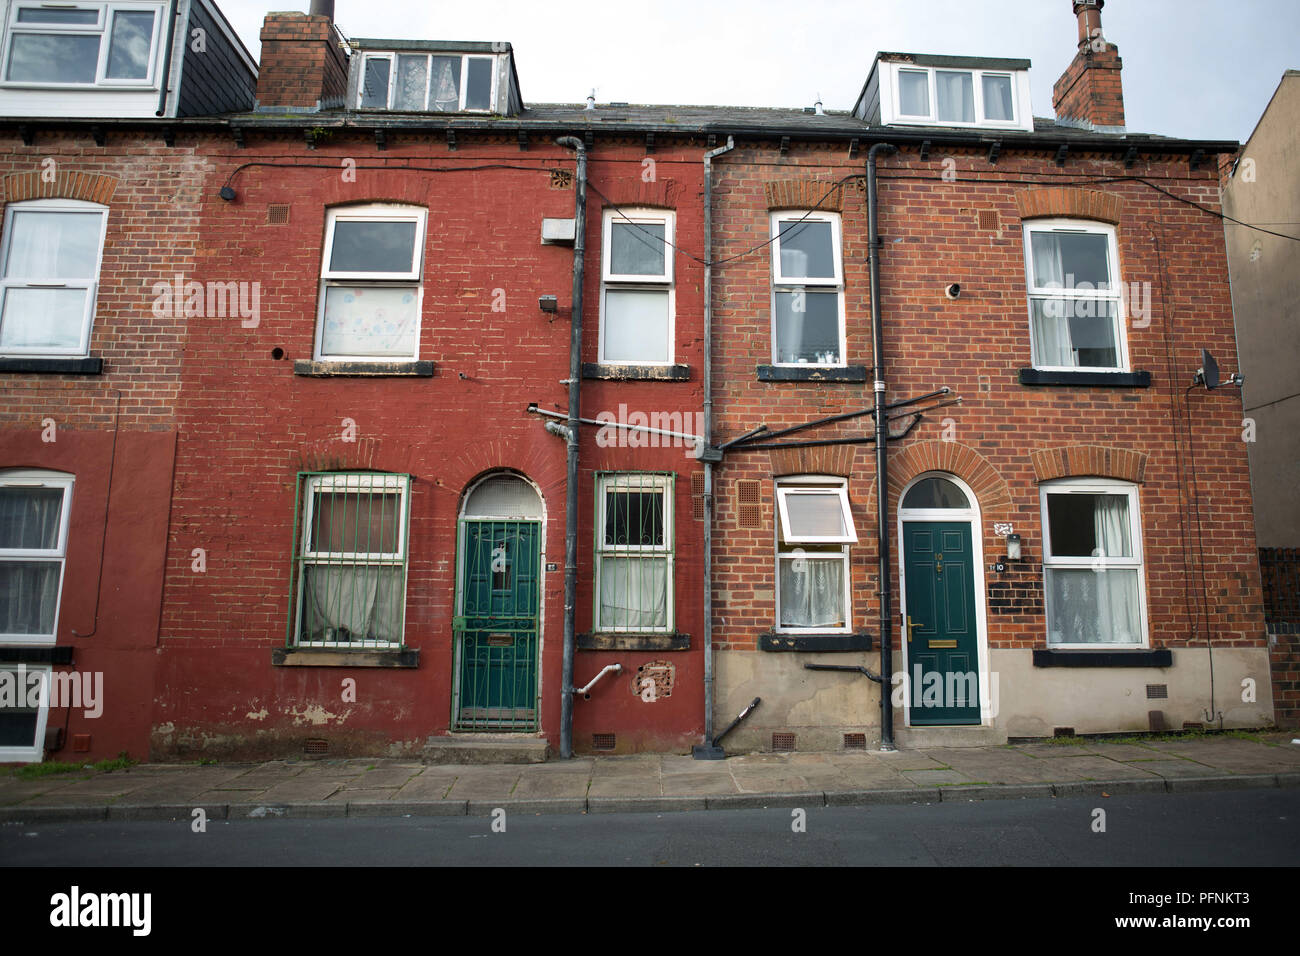 Leeds, UK. 21st Sep, 2017. Some Local council housings neighborhood seen in the Woodhouse area in Leeds. Social housing is a method of housing tenure in which the home is possessed by a local authority, which may be central or local, Social housing is a rental housing which may be owned and ran by the state, by non-profit organizations, or by a combination of the two, usually with the purpose of delivering affordable housing. Social housing can also be perceived as a potential solution to housing inequality. Credit: Rahman Hassani/SOPA Images/ZUMA Wire/Alamy Live News - Stock Image